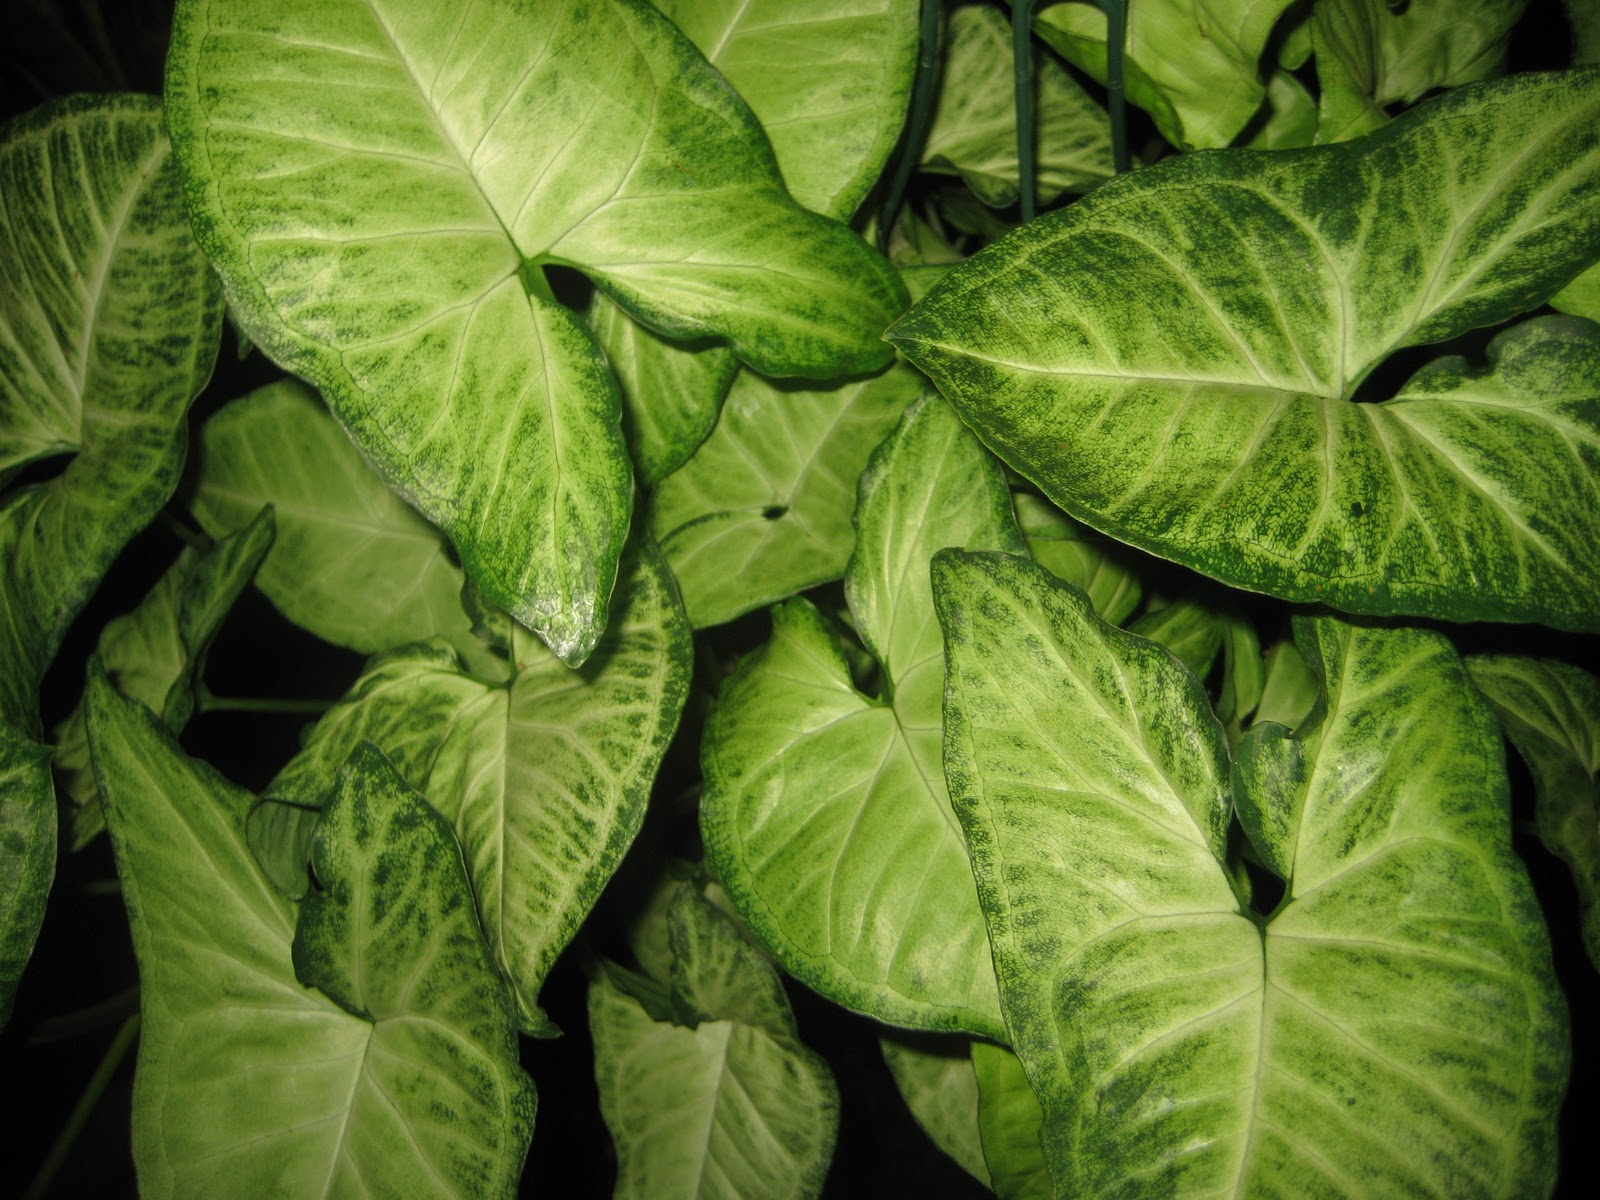 photograph by paul gellatly - Identifying Common House Plants